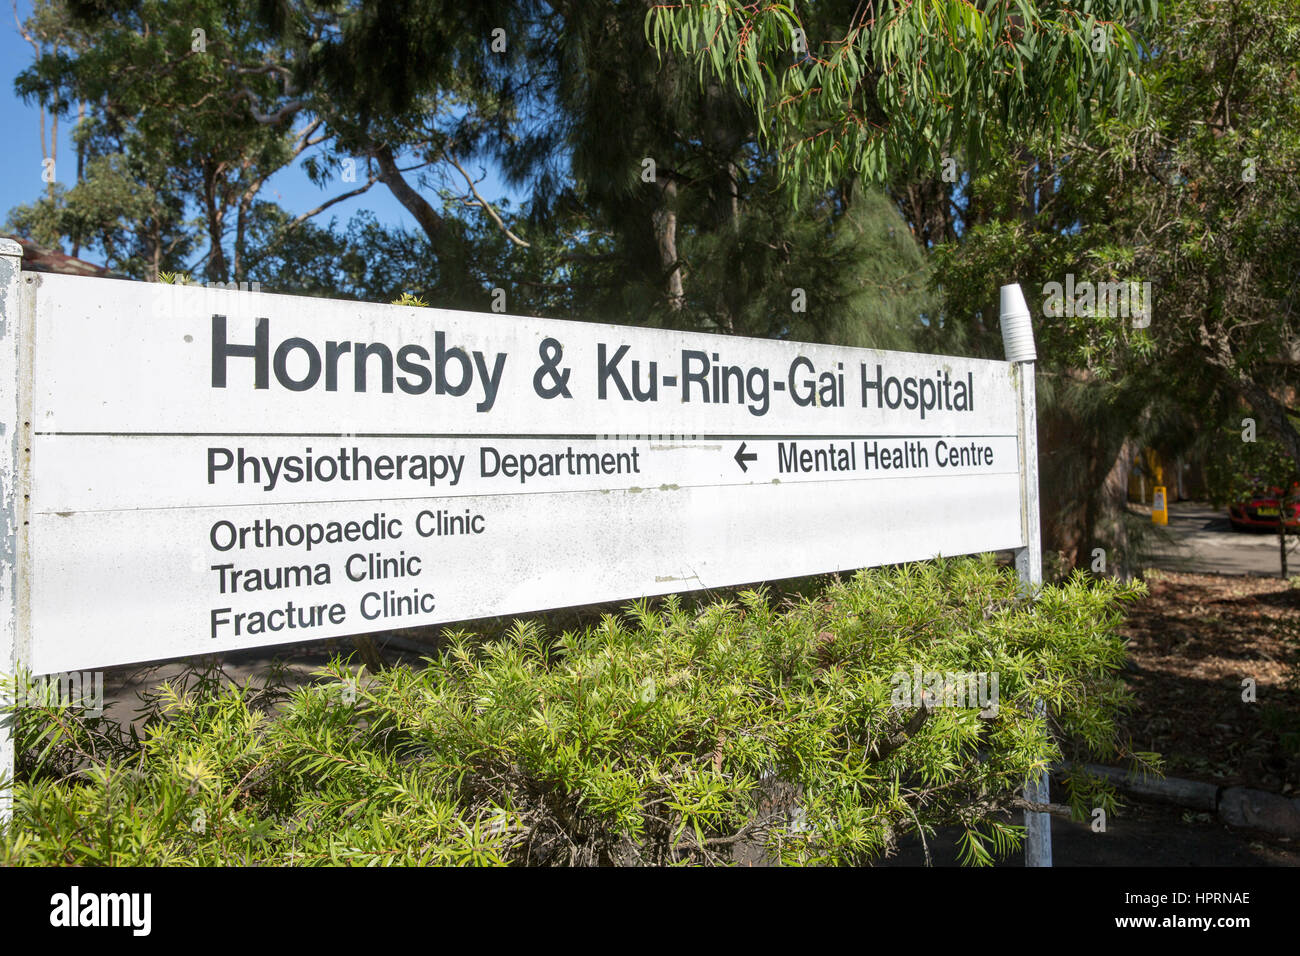 Hornsby Ku-Ring-gai hospital à Sydney, Nouvelle-Galles du Sud, Australie Photo Stock